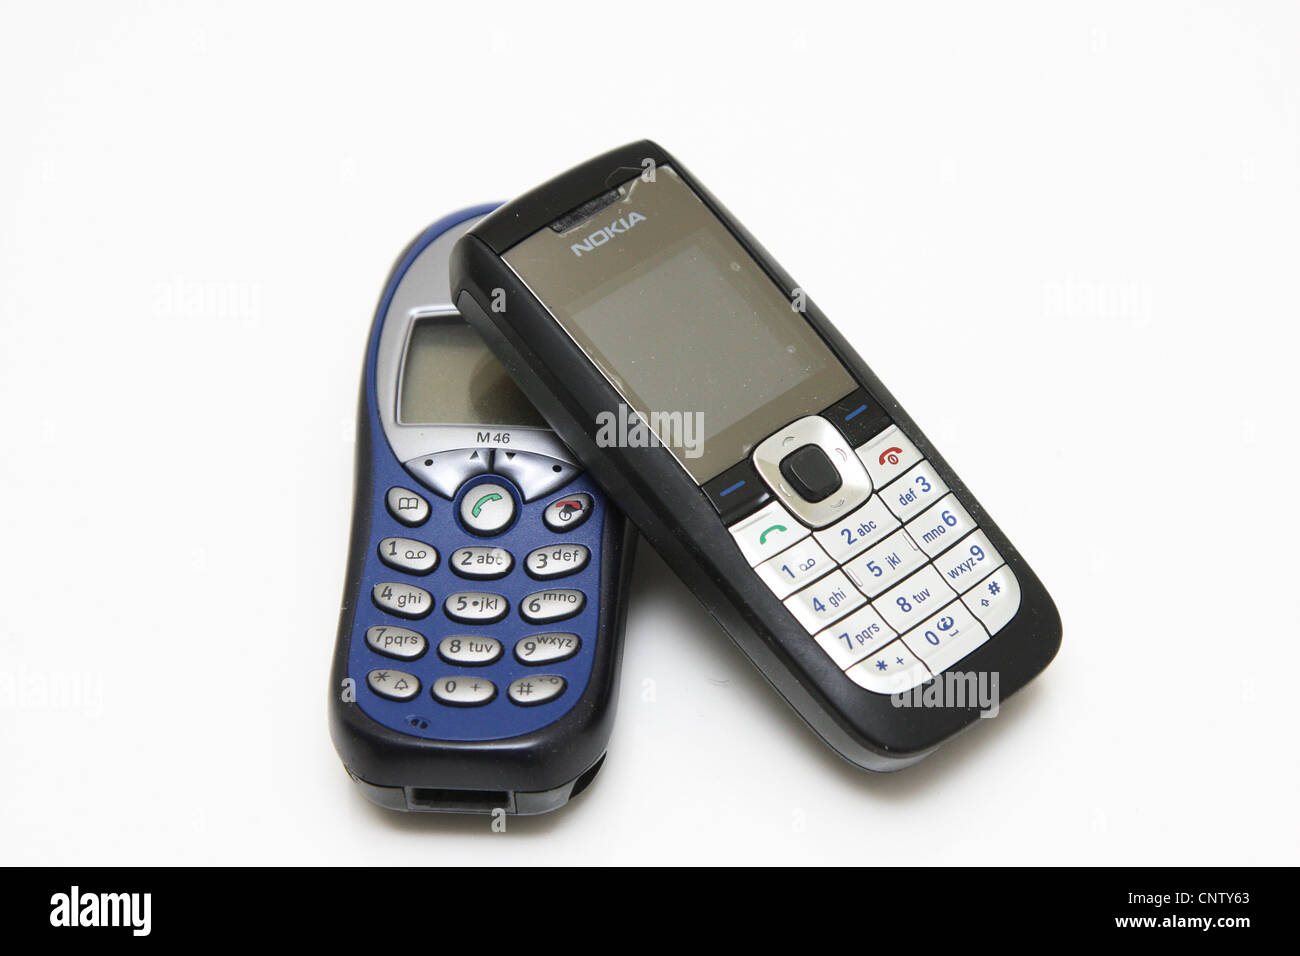 Siemens Nokia cell mobile phone - Stock Image